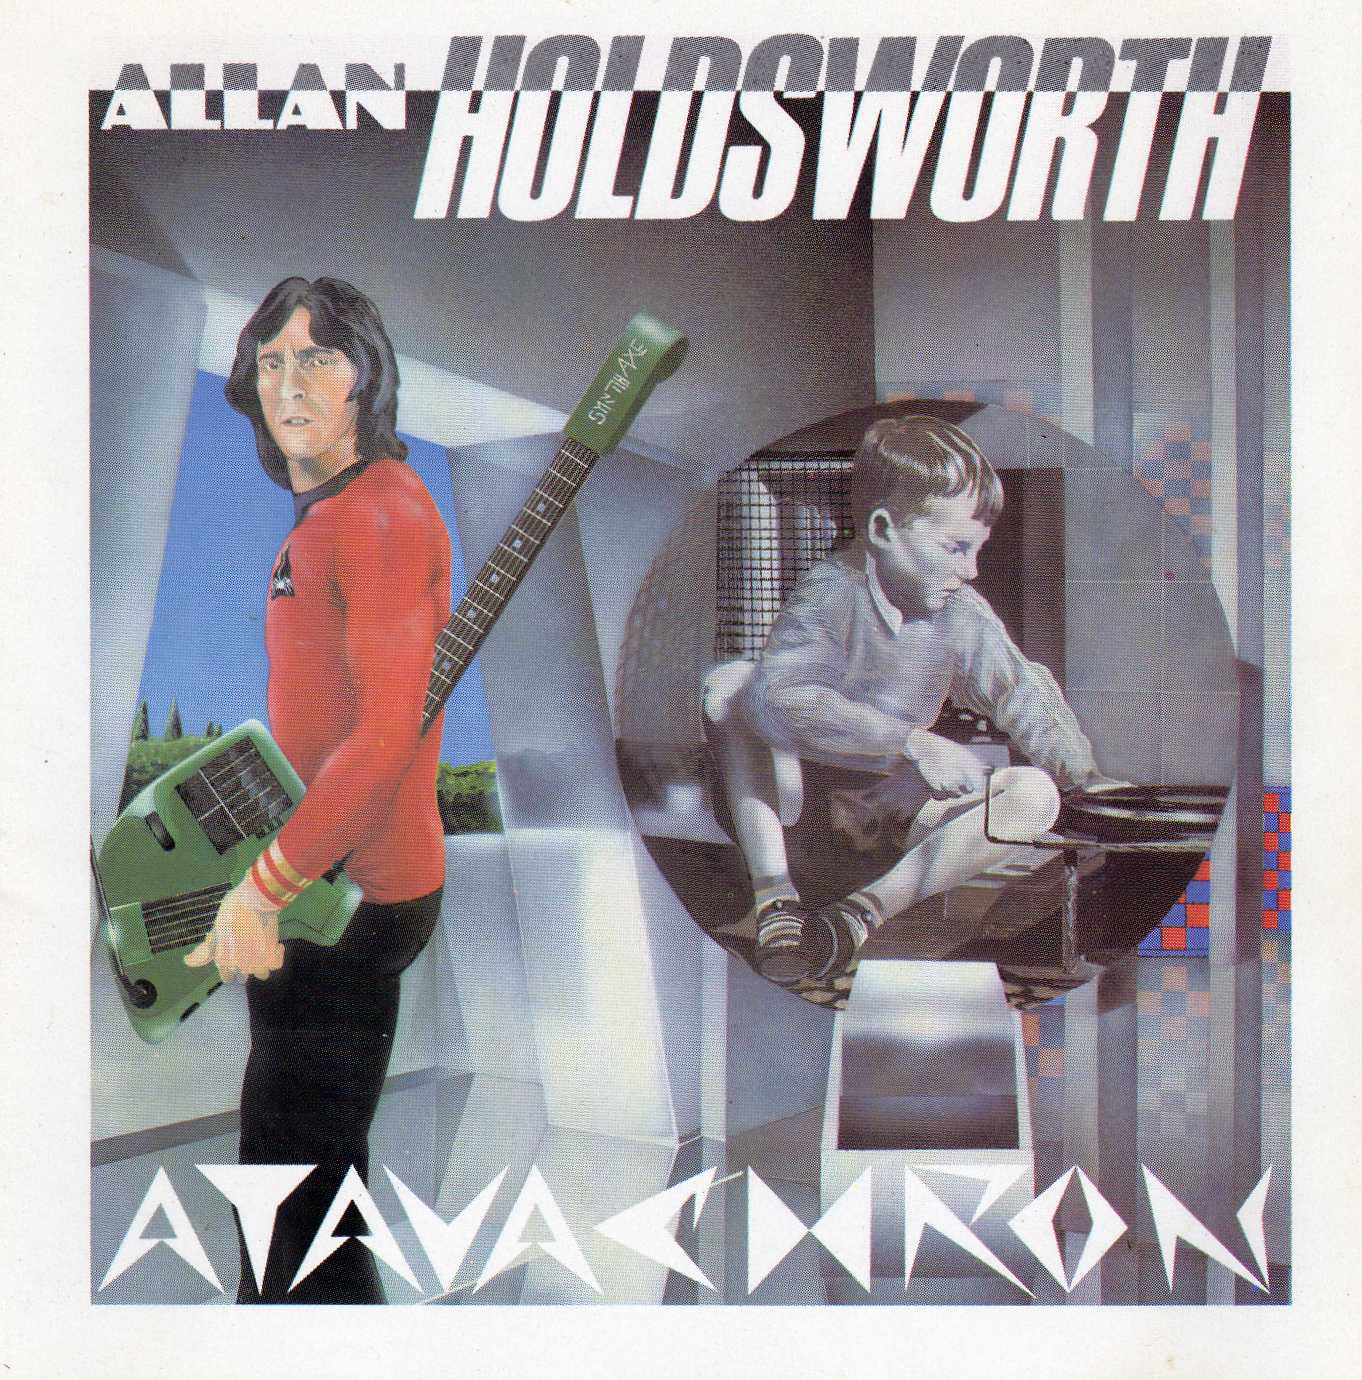 Allan Holdsworth Allan Holdsworth Atavachron Album Review Sputnikmusic